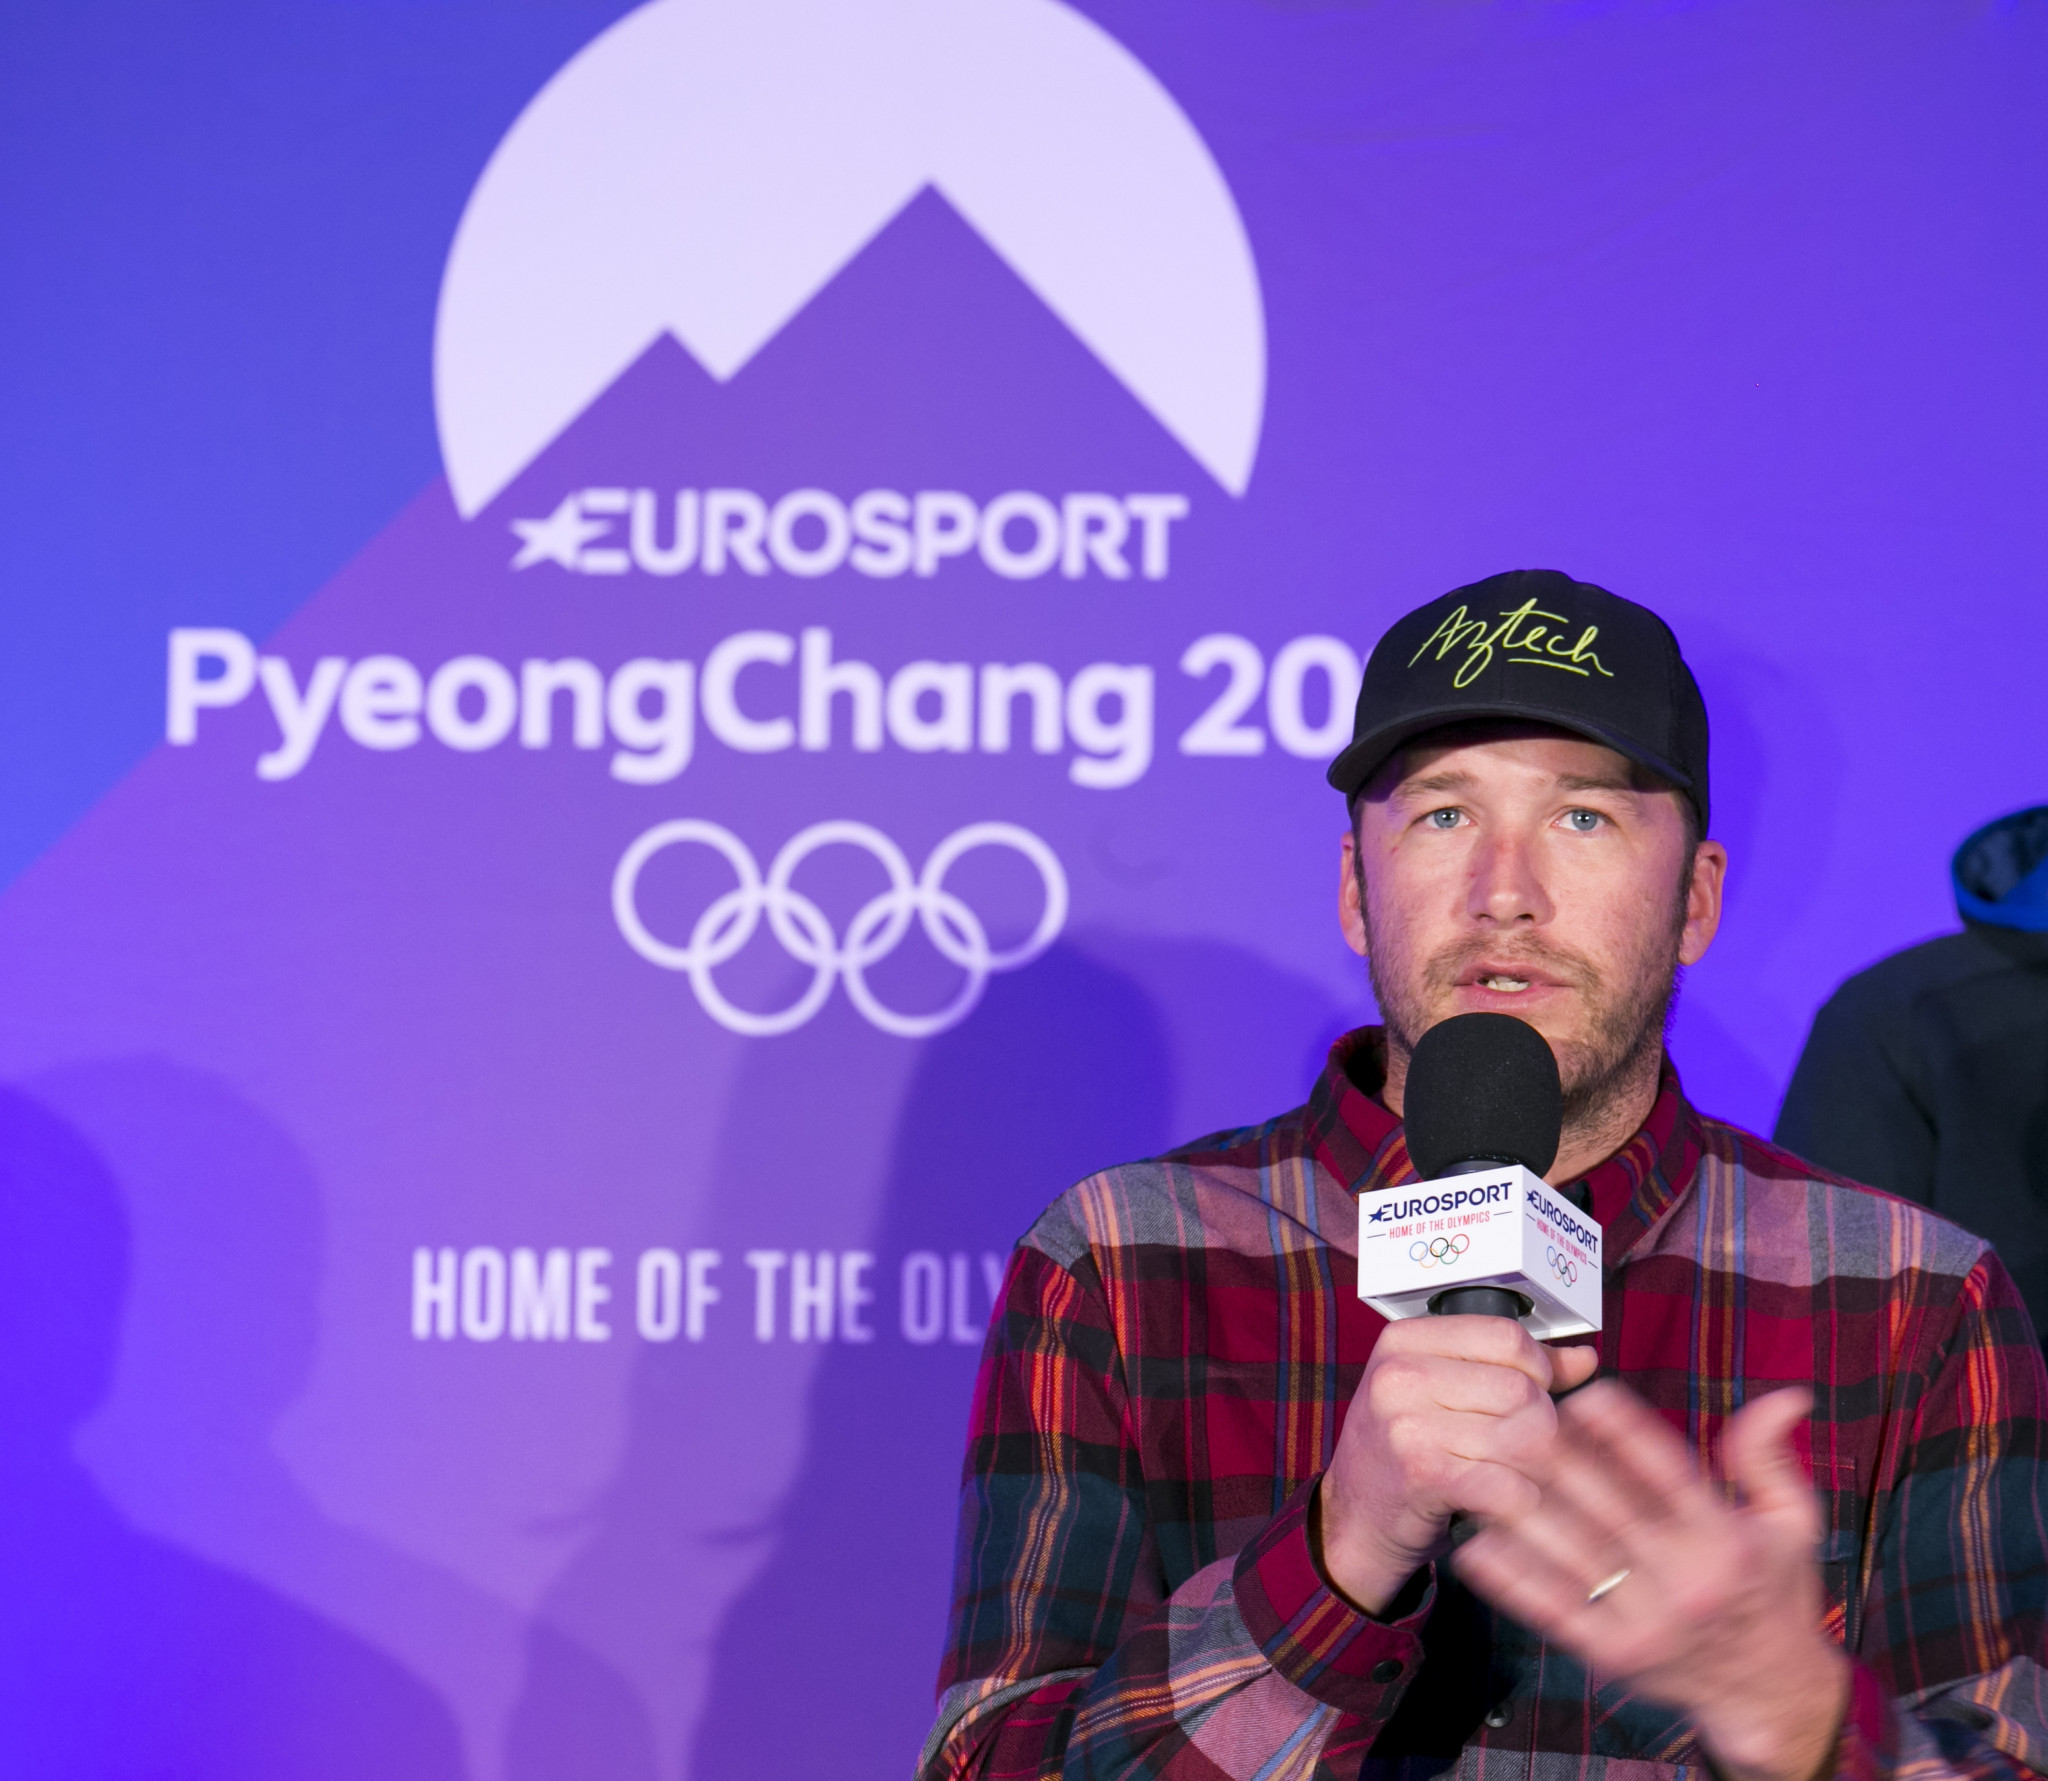 Six-time Olympic medal-winning skier Bode Miller has been added to Eurosport's line-up of more than 150 winter sports experts and commentators for Pyeongchang 2018 ©Getty Images